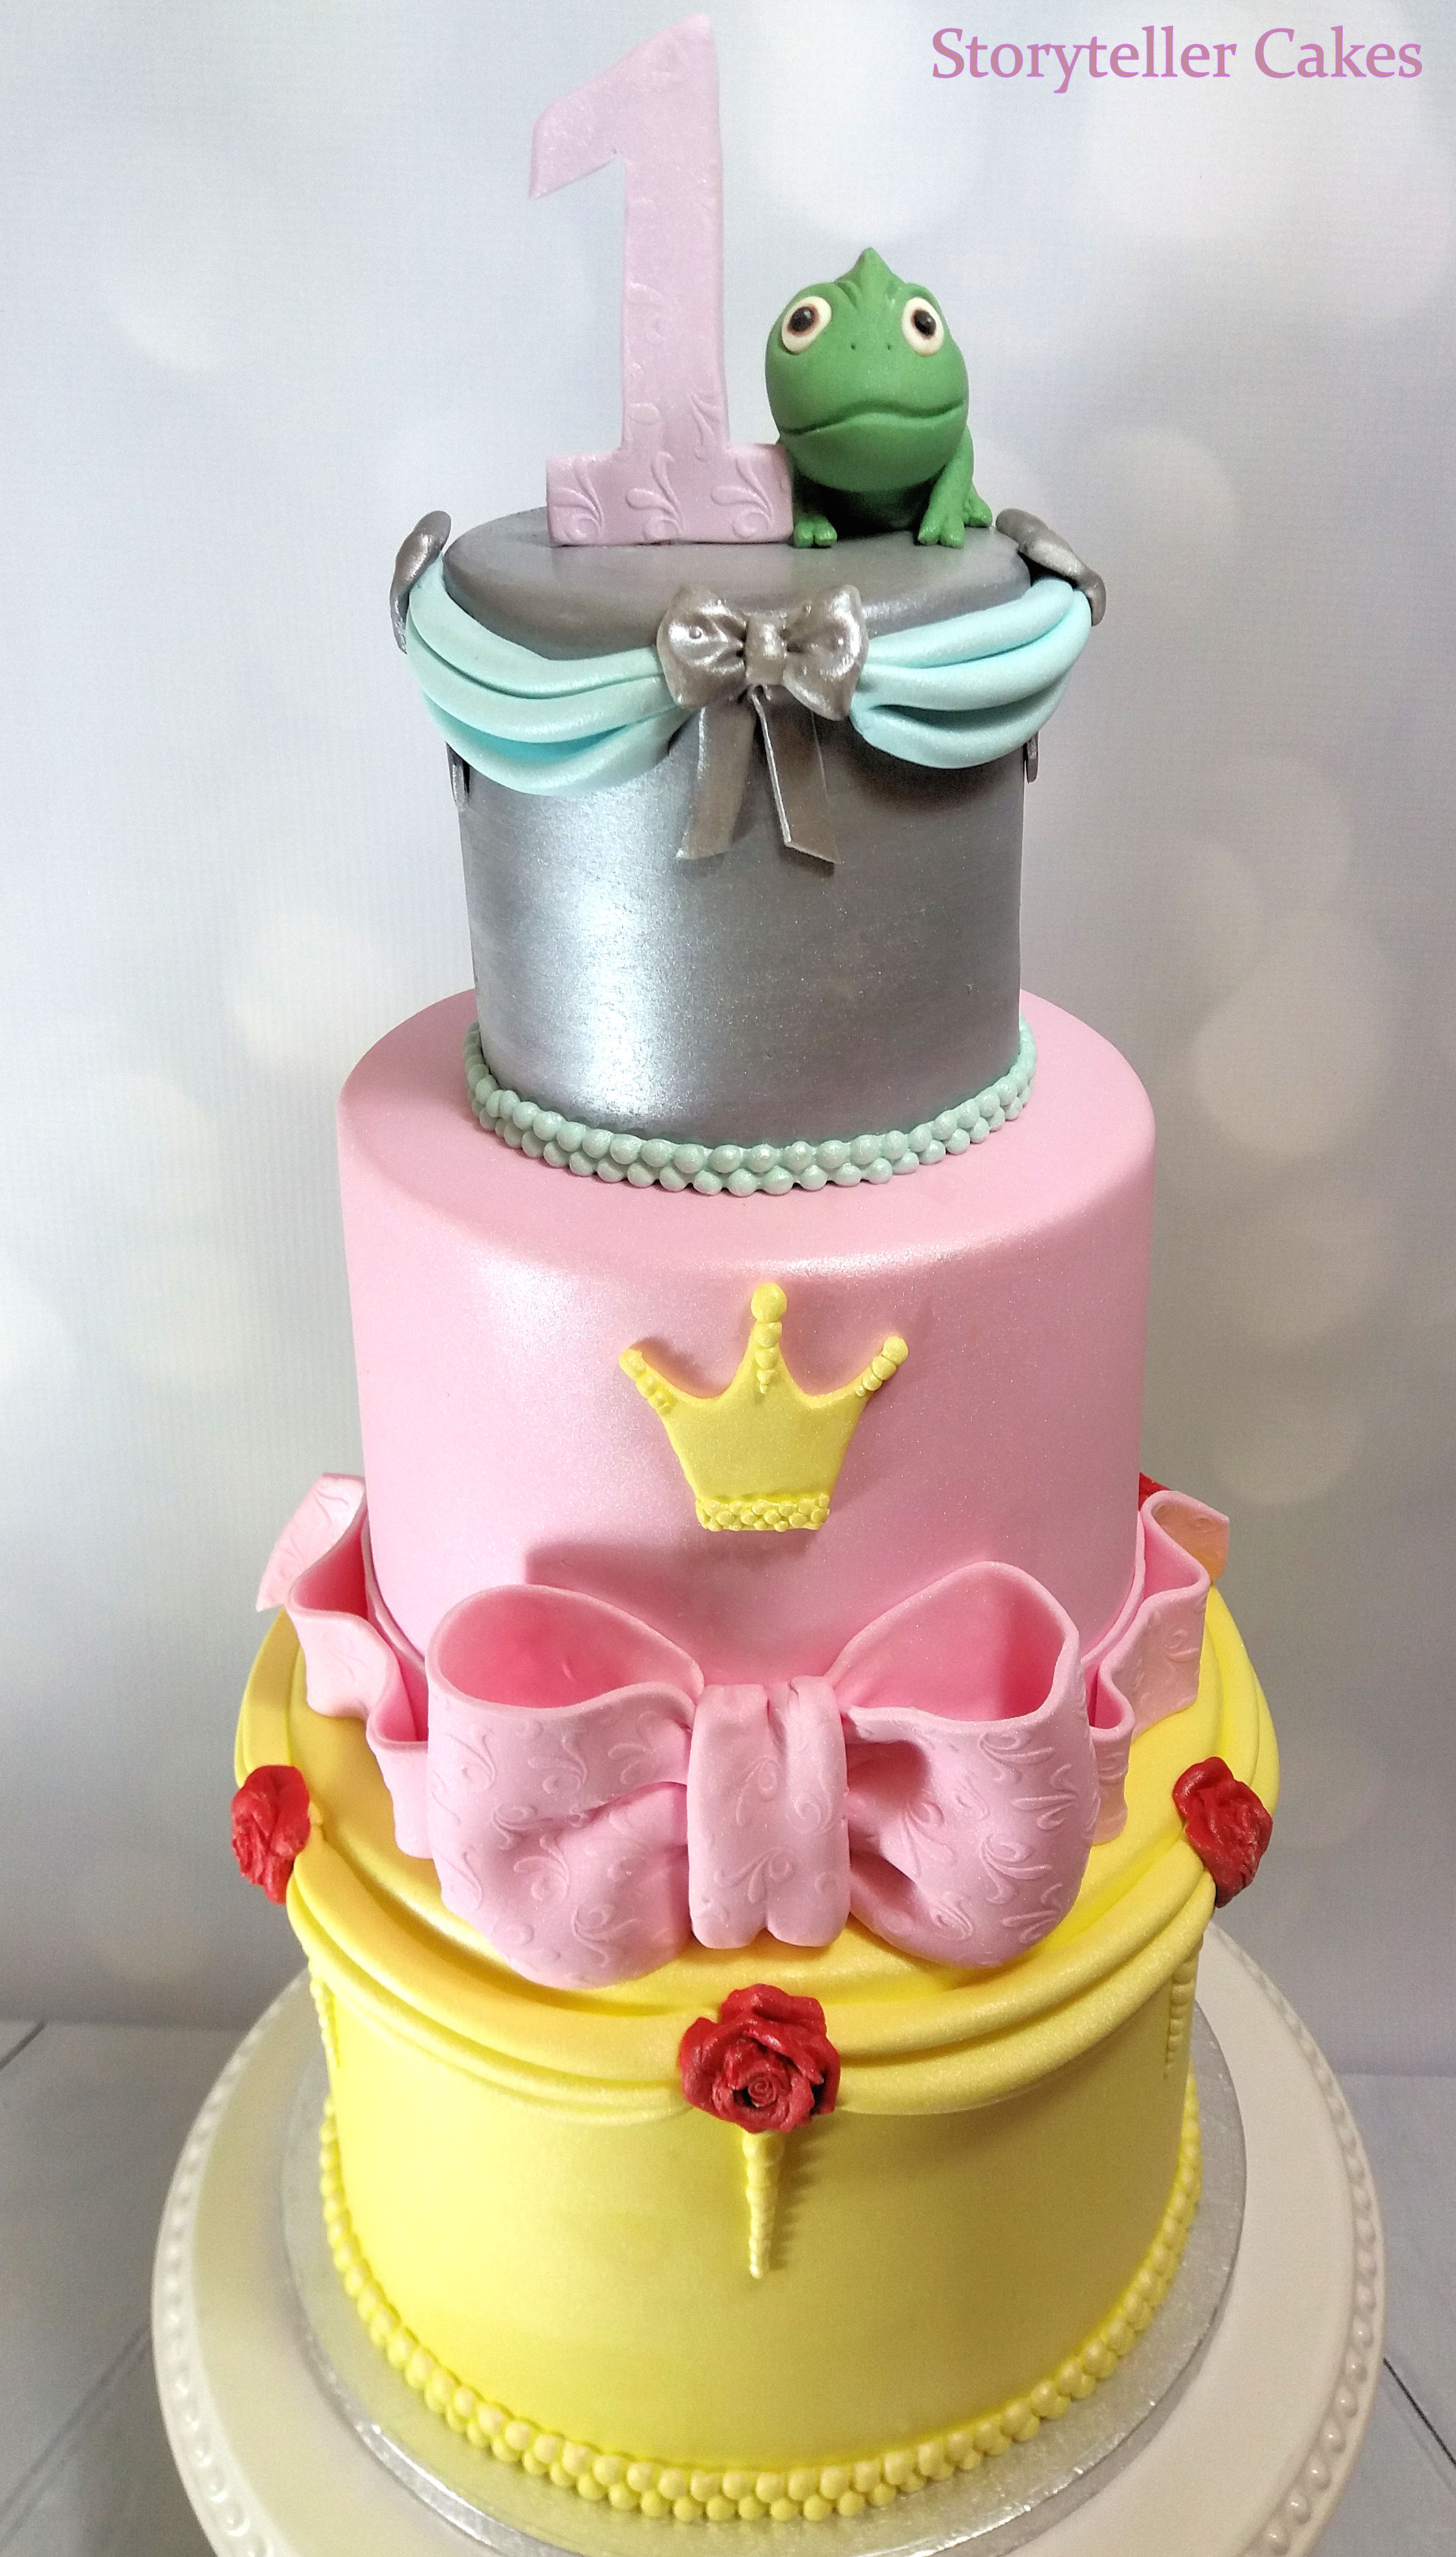 Disney Beauty & The Beast Birthday cake 2.jpg